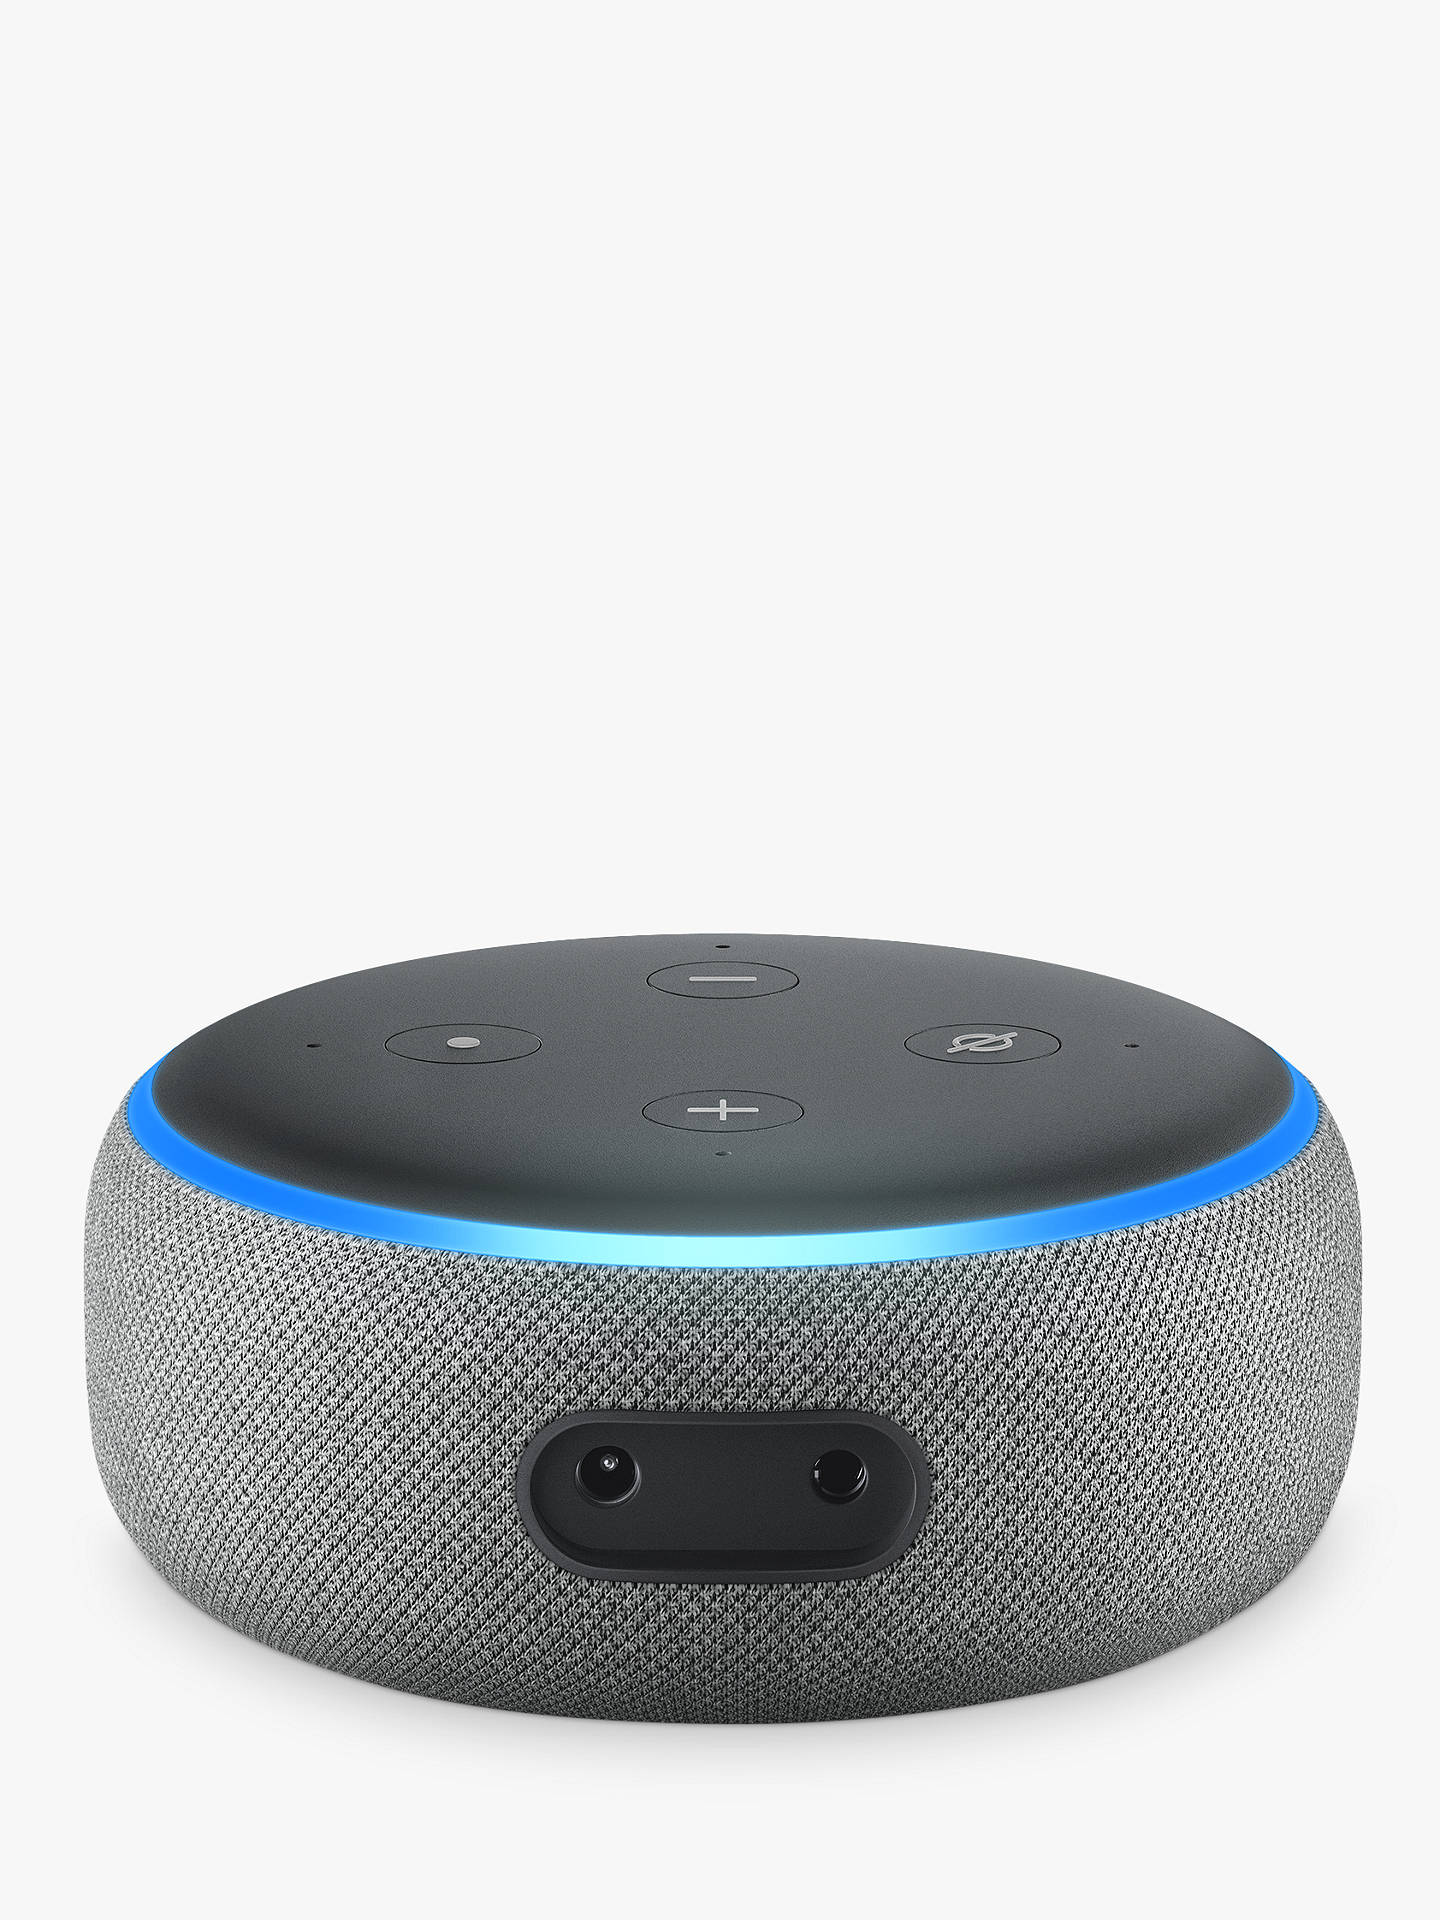 echo dot gen 3